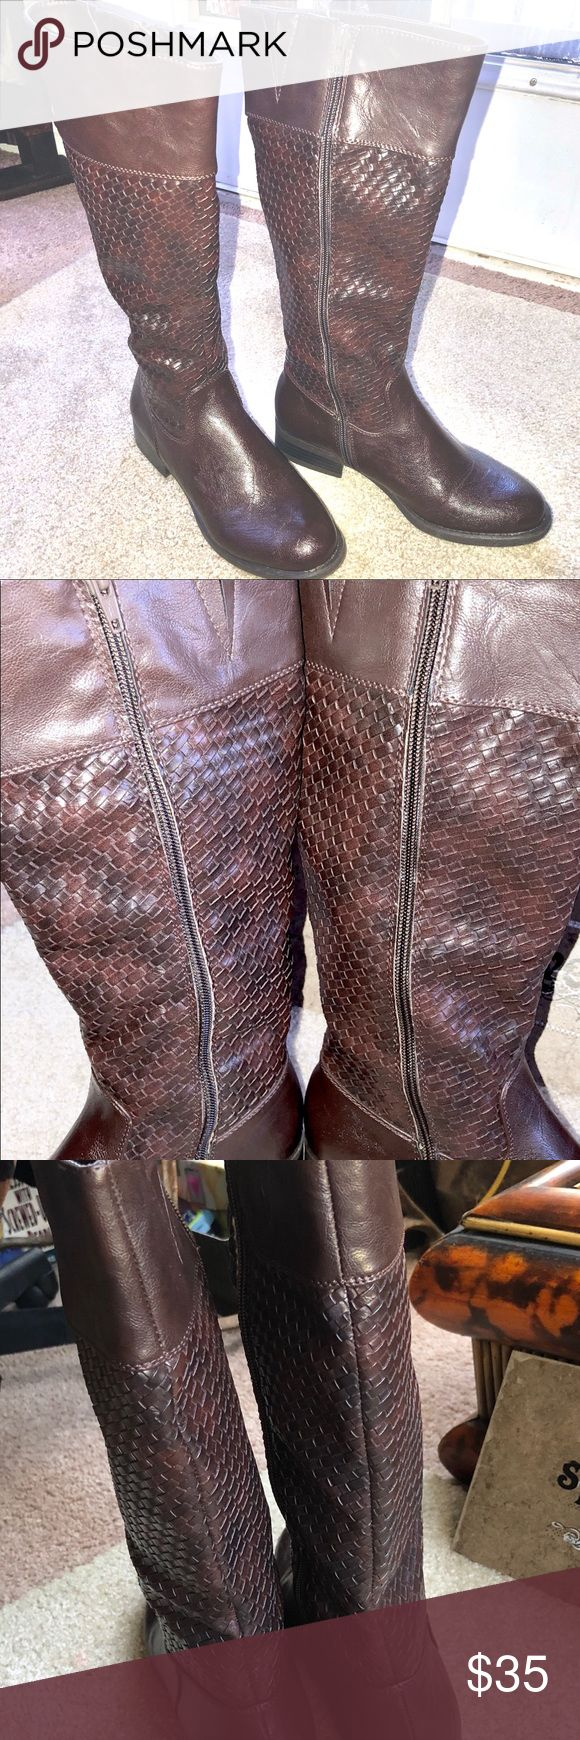 White Mountain Brand Boots for Ladies! Sz 6 Worn once! Great looking pair of knee high boots for ladies!! No marks or scuffs! Made from man made materials, not genuine leather, but still striking!! Inside zipper closures and elastic hidden at top for expandable fit!!! Basket weave design! Dark/medium brown colors. Wonderful addition to any wardrobe!! Size 6(lady's). Thank you!! Carlee❤️ White Mountain Shoes Heeled Boots